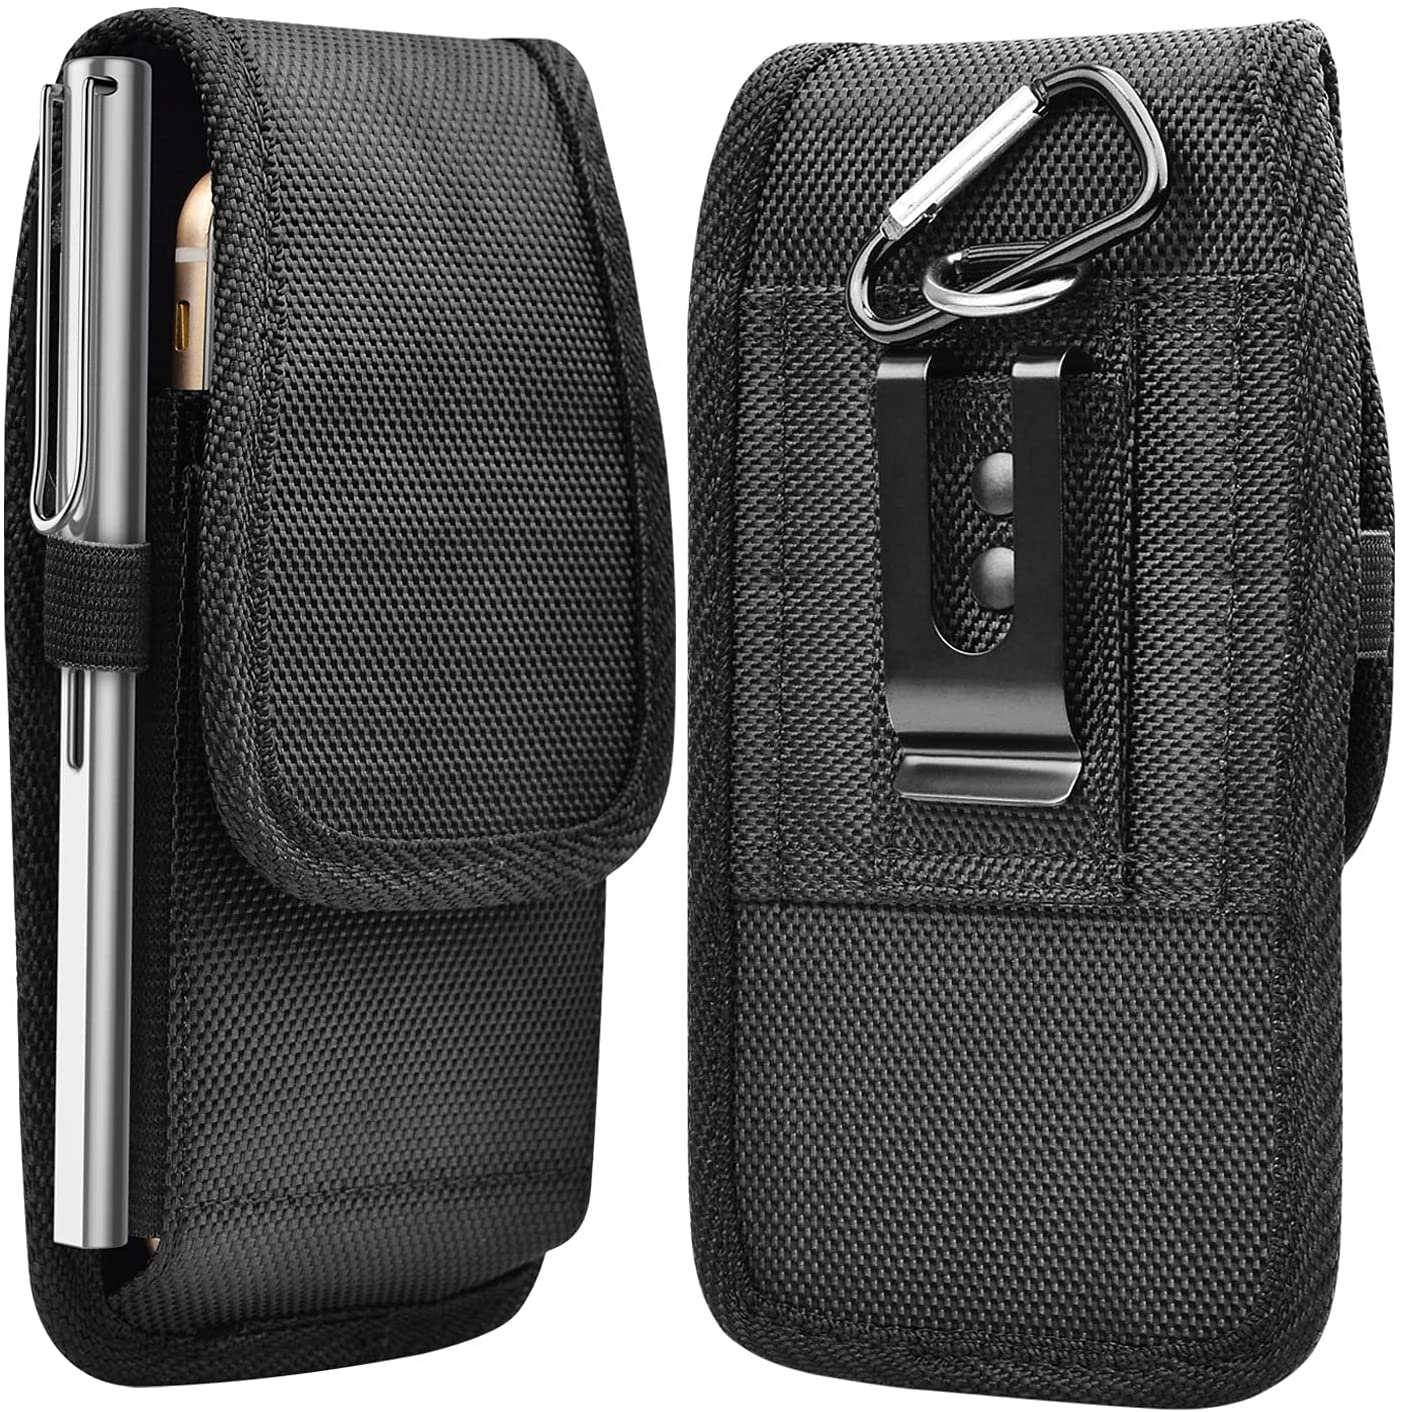 Njjex Cell Phone Holster for iPhone 13 Pro Max 12 11 XS XR 7 8+ Samsung Galaxy S21 Ultra S20+ S10 S9 Note 20 10+ A01 A11 A21 A51 A71 A02S A12 A32 A42 A52 Belt Clip Holster Phone Pouch Carrying Holder